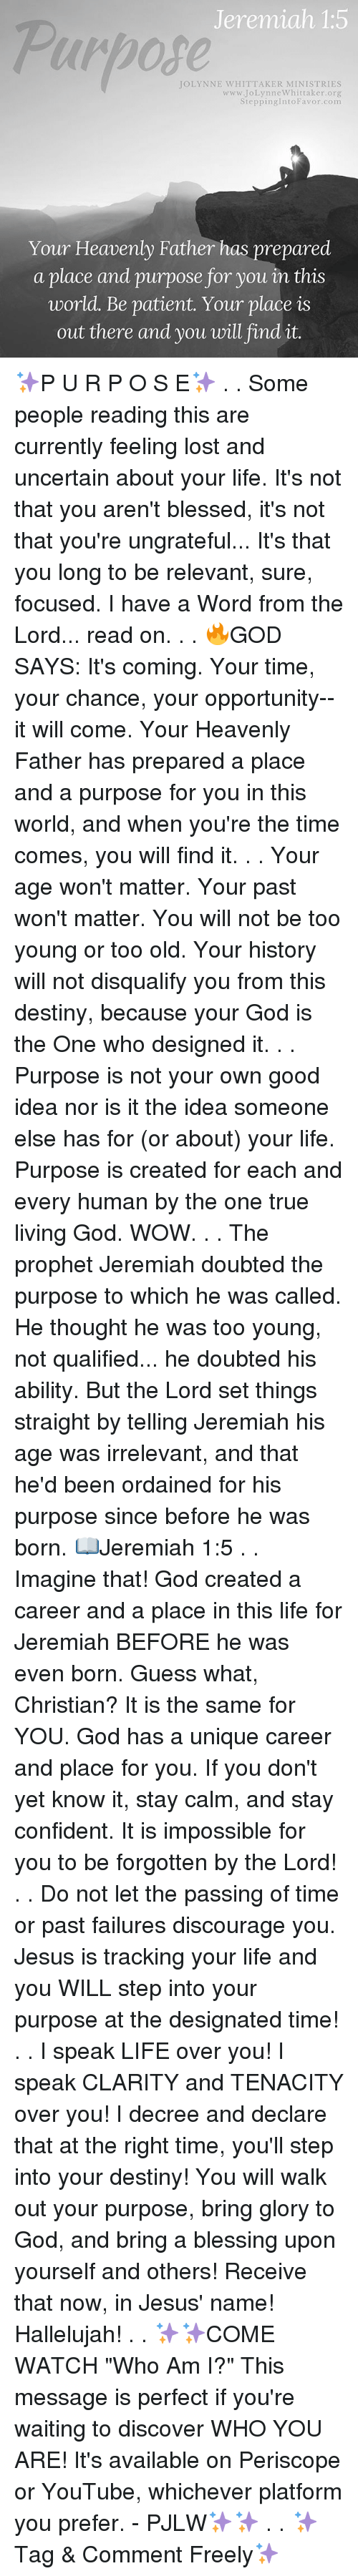 "Blessed, Destiny, and God: Jeremiah 1:5  Purpose  JOLYNNE WHITTAKER MINISTRIES  er org  SteppingIntoFavor.com  www.JoLynneWhittak  Your Heavenly Father has prepared  a place and purpose for you in this  world. Be patient. Your place is  out there and you will find it ✨P U R P O S E✨ . . Some people reading this are currently feeling lost and uncertain about your life. It's not that you aren't blessed, it's not that you're ungrateful... It's that you long to be relevant, sure, focused. I have a Word from the Lord... read on. . . 🔥GOD SAYS: It's coming. Your time, your chance, your opportunity--it will come. Your Heavenly Father has prepared a place and a purpose for you in this world, and when you're the time comes, you will find it. . . Your age won't matter. Your past won't matter. You will not be too young or too old. Your history will not disqualify you from this destiny, because your God is the One who designed it. . . Purpose is not your own good idea nor is it the idea someone else has for (or about) your life. Purpose is created for each and every human by the one true living God. WOW. . . The prophet Jeremiah doubted the purpose to which he was called. He thought he was too young, not qualified... he doubted his ability. But the Lord set things straight by telling Jeremiah his age was irrelevant, and that he'd been ordained for his purpose since before he was born. 📖Jeremiah 1:5 . . Imagine that! God created a career and a place in this life for Jeremiah BEFORE he was even born. Guess what, Christian? It is the same for YOU. God has a unique career and place for you. If you don't yet know it, stay calm, and stay confident. It is impossible for you to be forgotten by the Lord! . . Do not let the passing of time or past failures discourage you. Jesus is tracking your life and you WILL step into your purpose at the designated time! . . I speak LIFE over you! I speak CLARITY and TENACITY over you! I decree and declare that at the right time, you'll step into your destiny! You will walk out your purpose, bring glory to God, and bring a blessing upon yourself and others! Receive that now, in Jesus' name! Hallelujah! . . ✨✨COME WATCH ""Who Am I?"" This message is perfect if you're waiting to discover WHO YOU ARE! It's available on Periscope or YouTube, whichever platform you prefer. - PJLW✨✨ . . ✨Tag & Comment Freely✨"